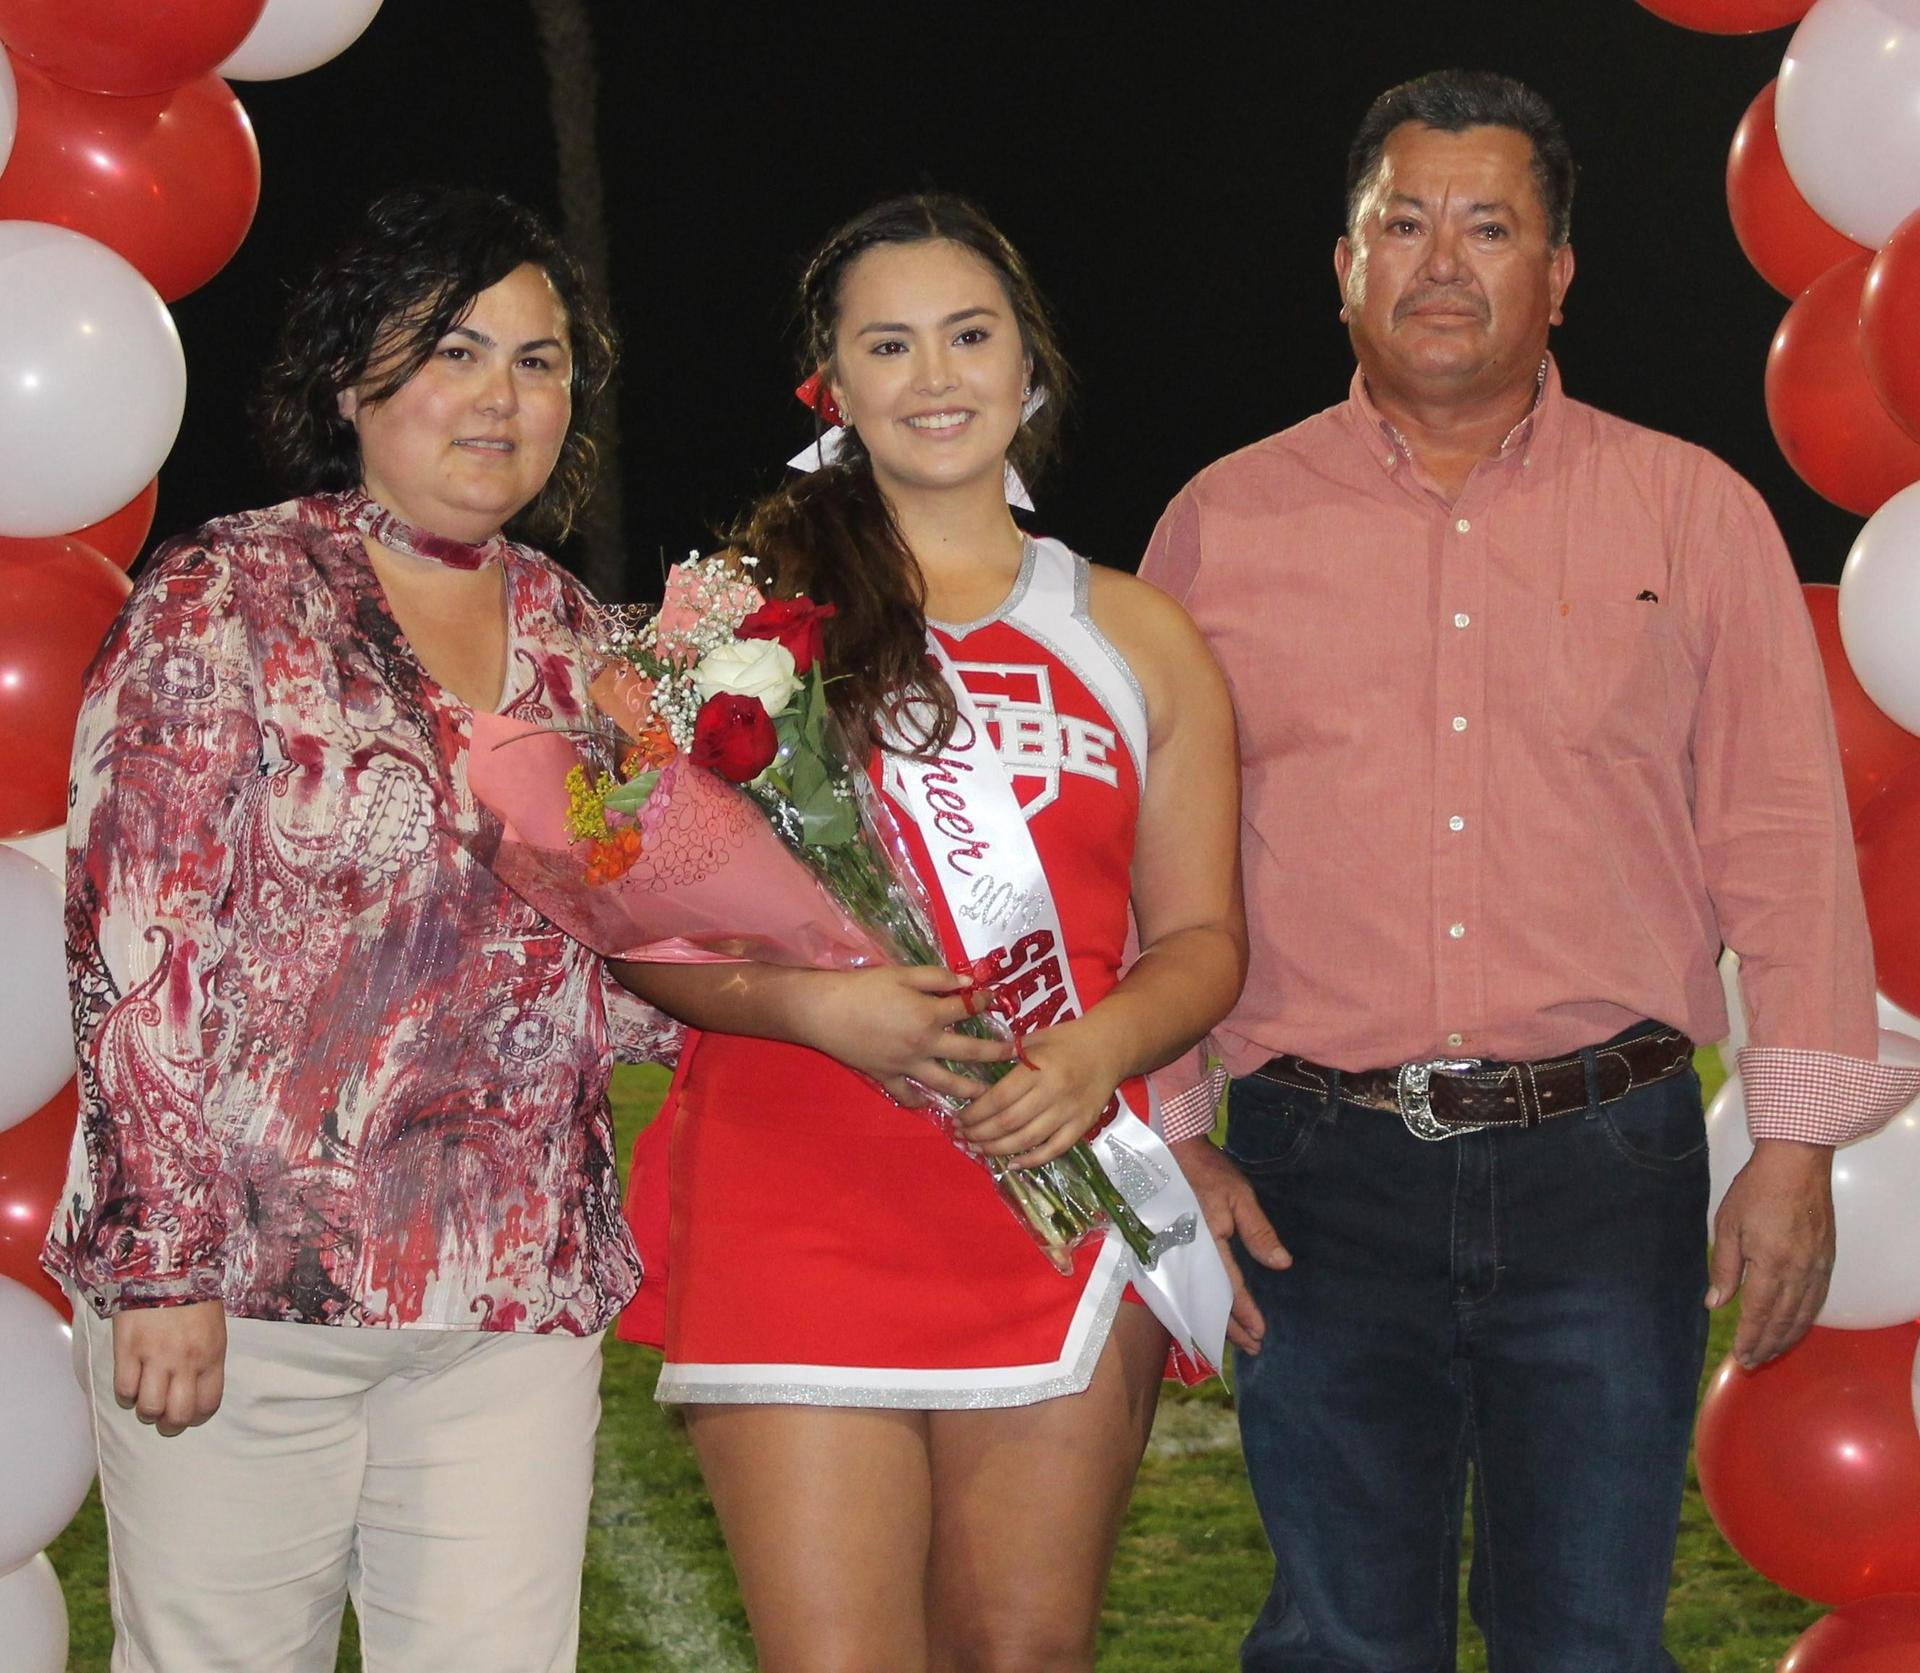 Erika Gallardo and her supporters at Senior Night.